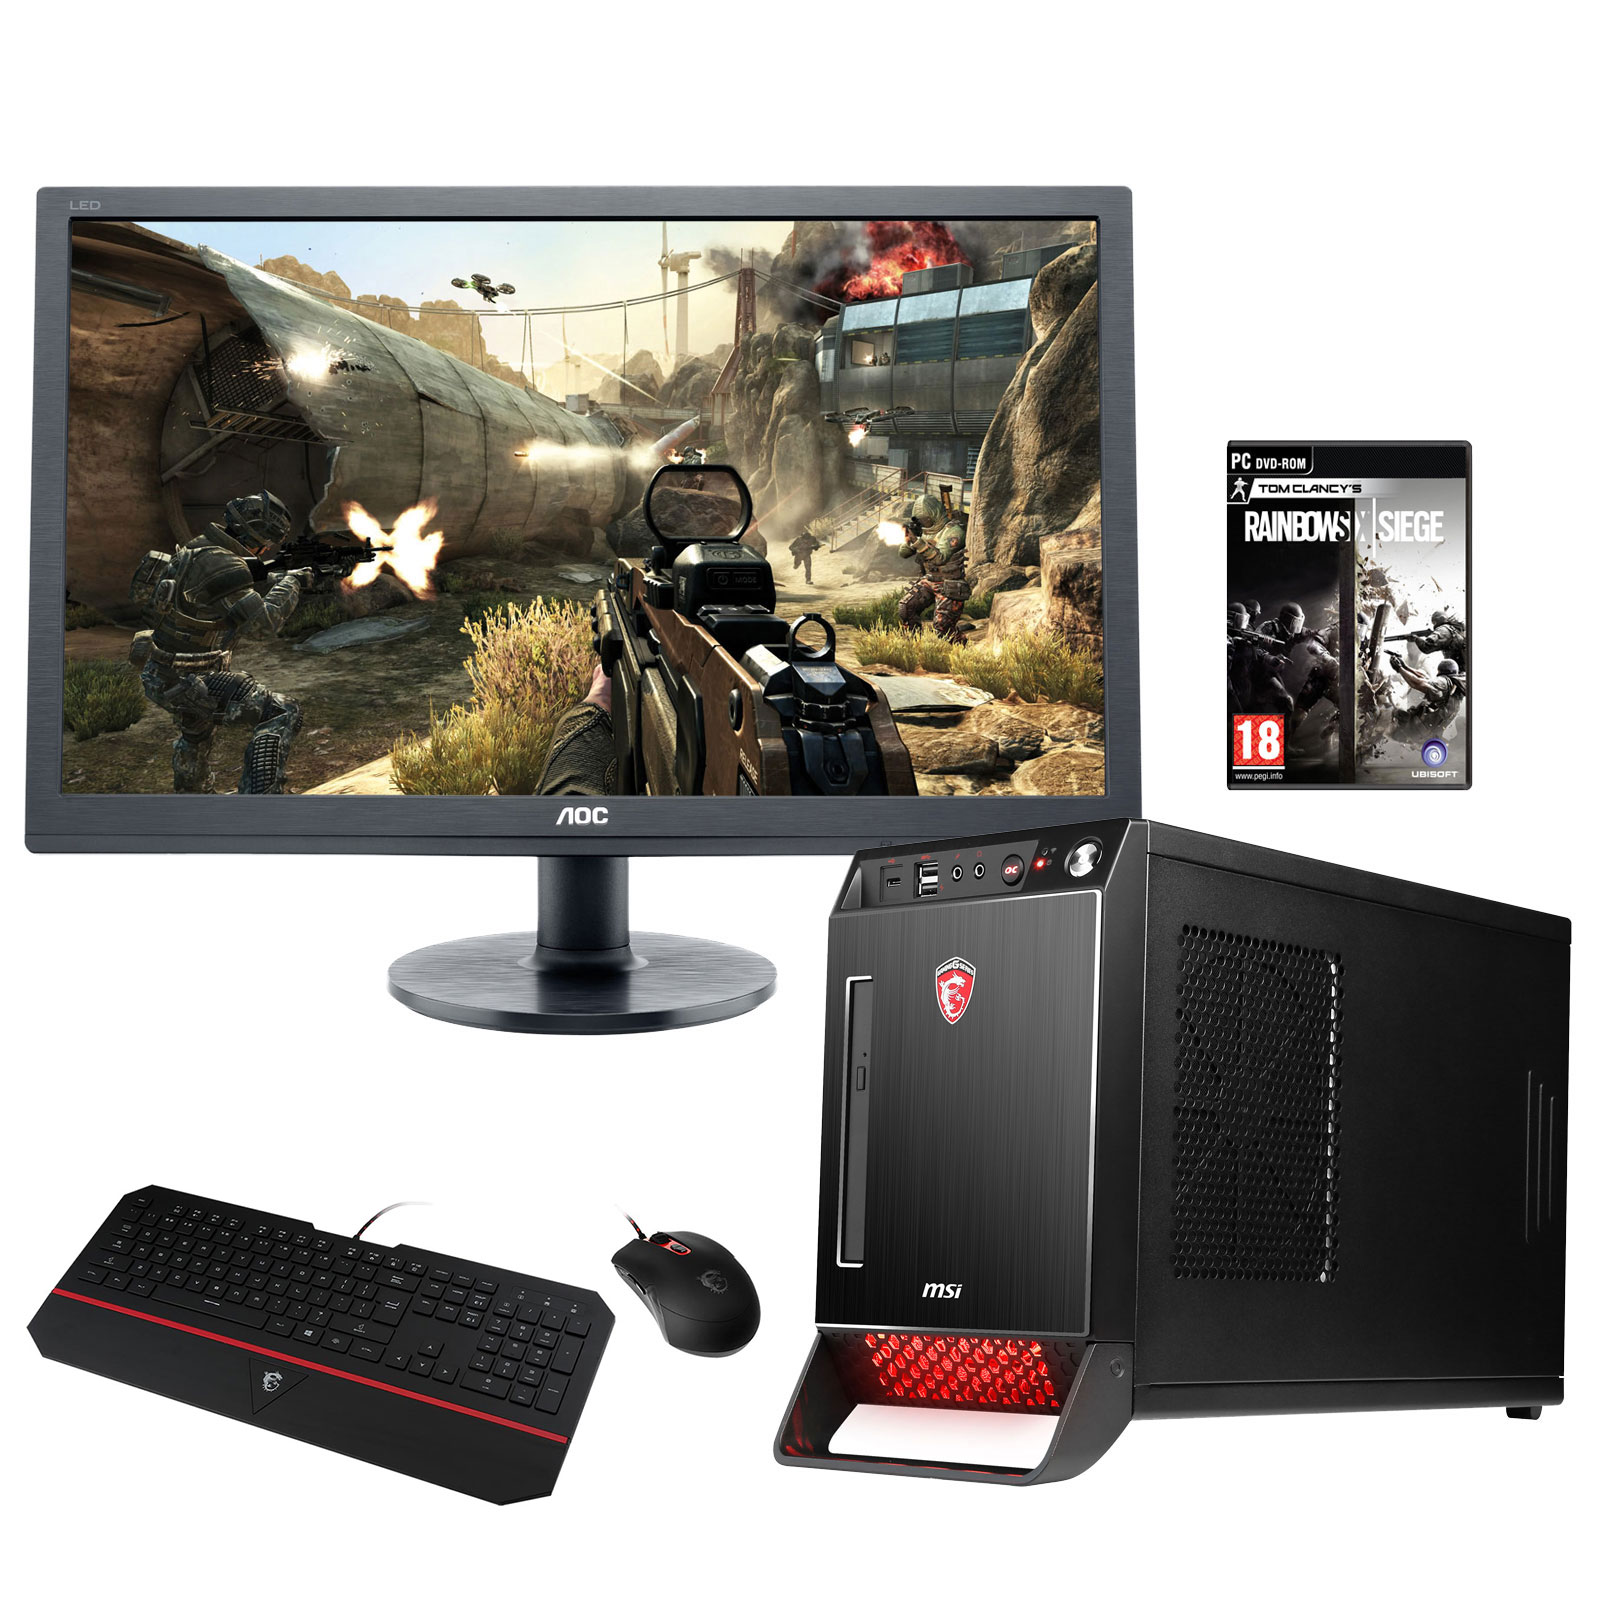 msi nightblade x2 084eu cran aoc g2460fq clavier msi ds4100 souris msi ds100 jeu. Black Bedroom Furniture Sets. Home Design Ideas